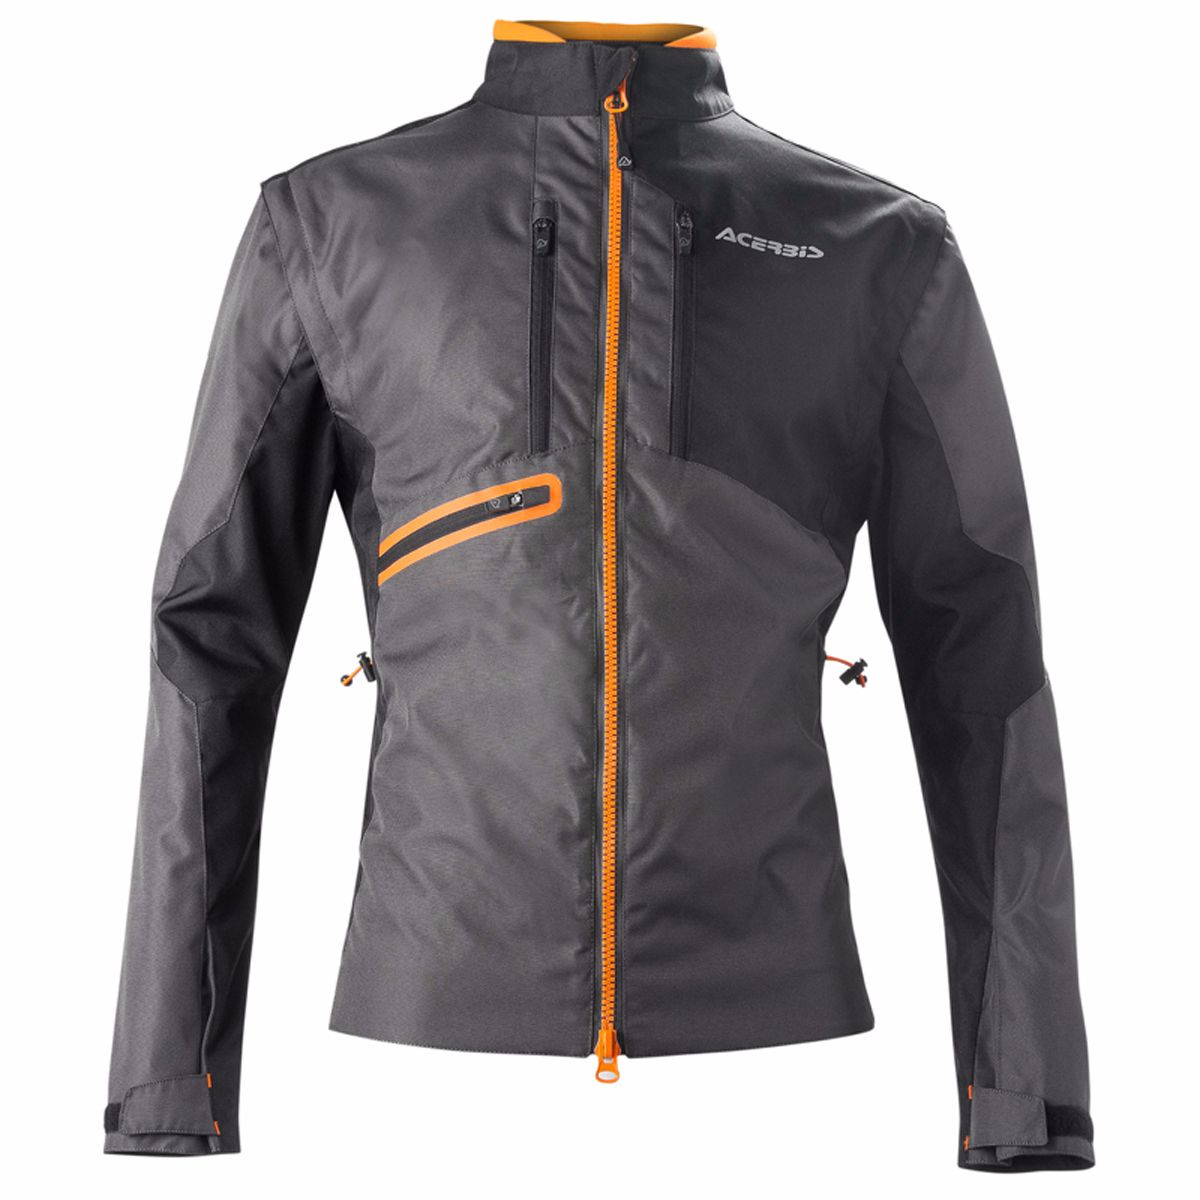 Veste Enduro Acerbis Enduro One - Noir Orange Fluo -